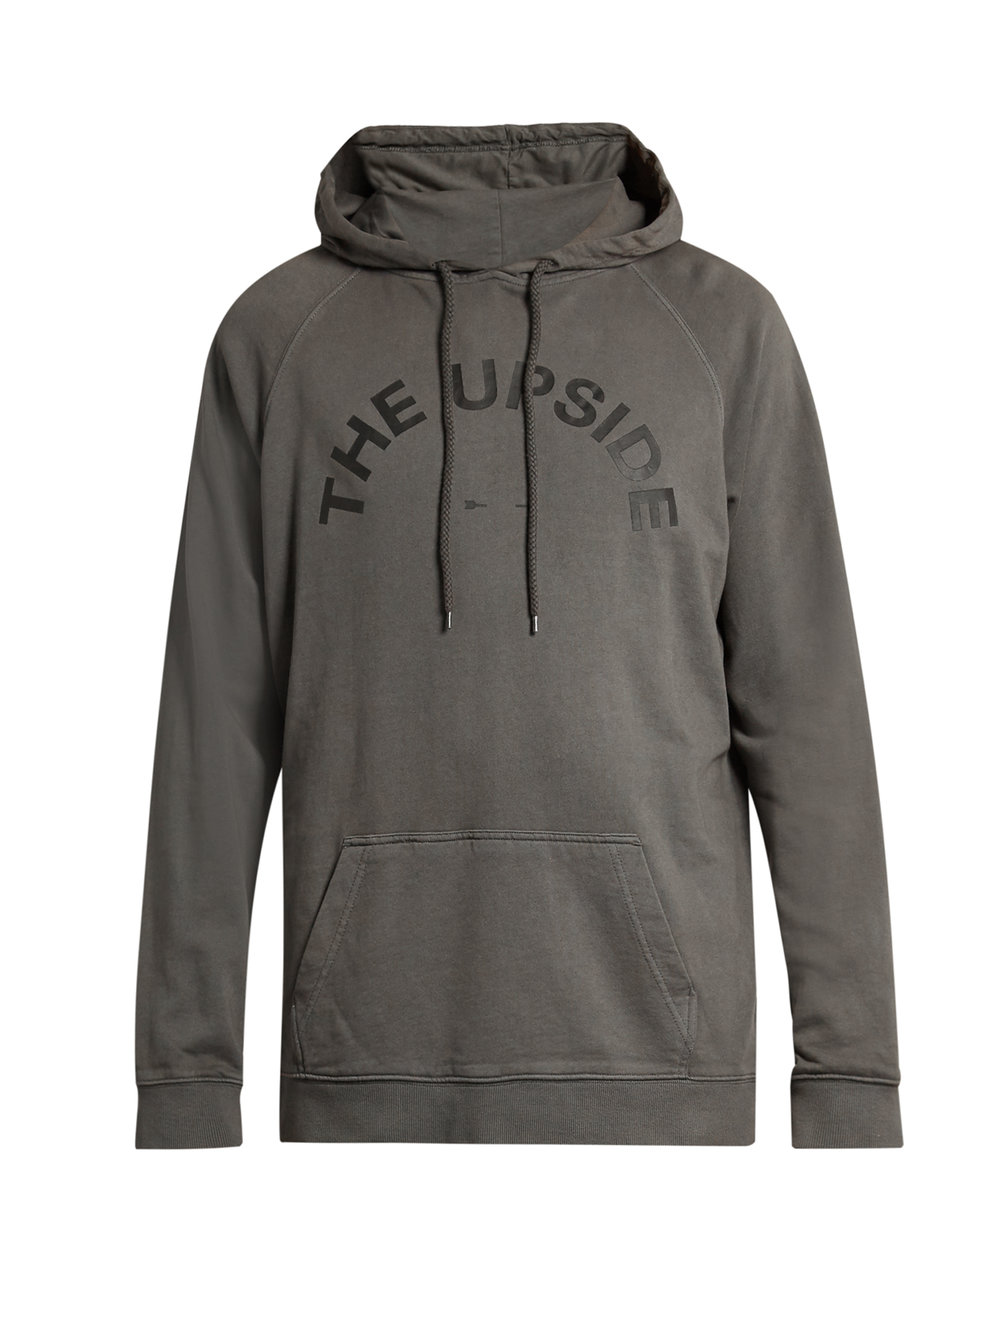 9. The Upside hoodie at MATCHESFASHION.COM.Jpeg